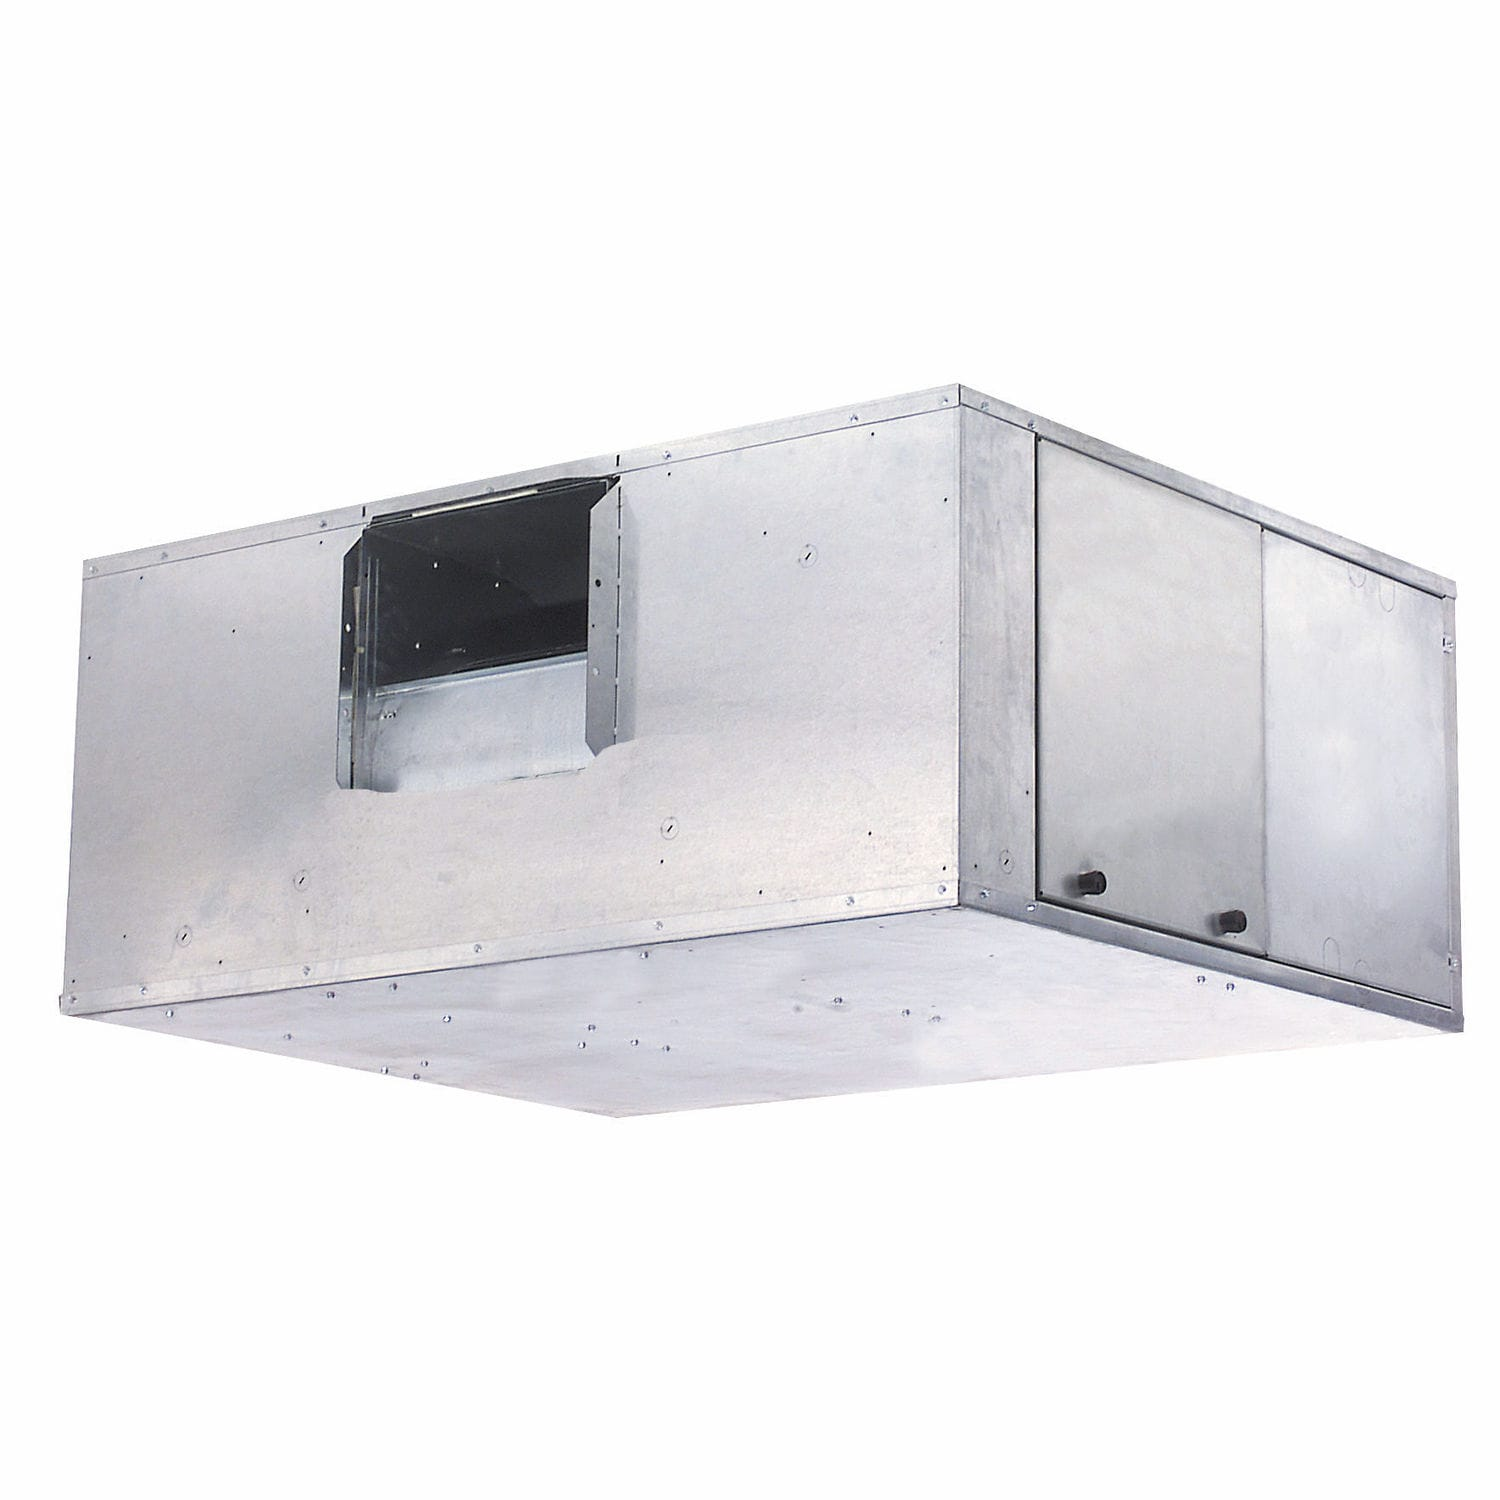 Recessed Fan Coil Duct